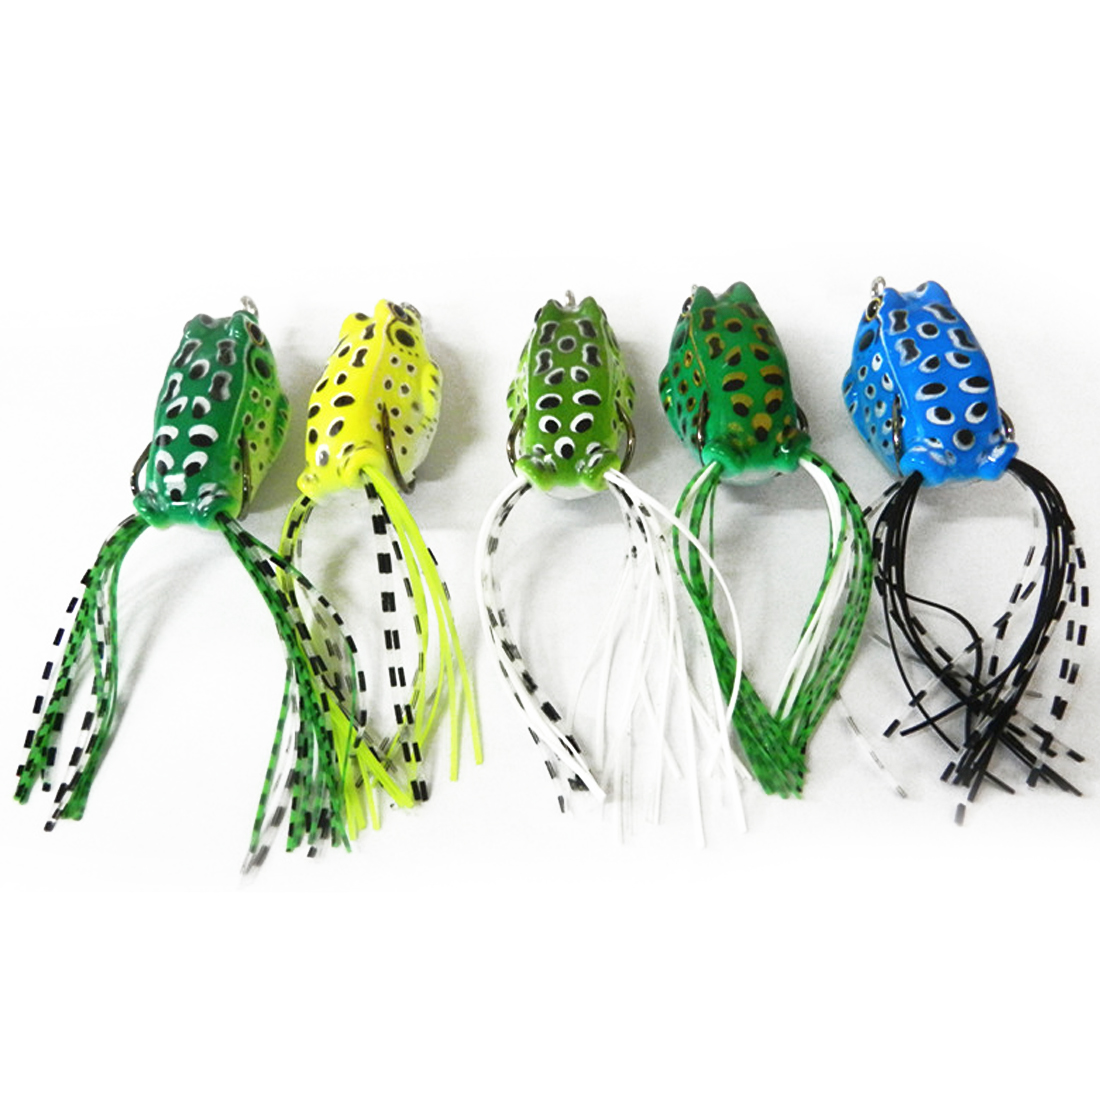 1PC Soft Tube Bait Japan Plastic Fishing Lures pesca Frog Lure Treble Hooks Ray Frog 5.5CM 8G Artificial Soft Bait